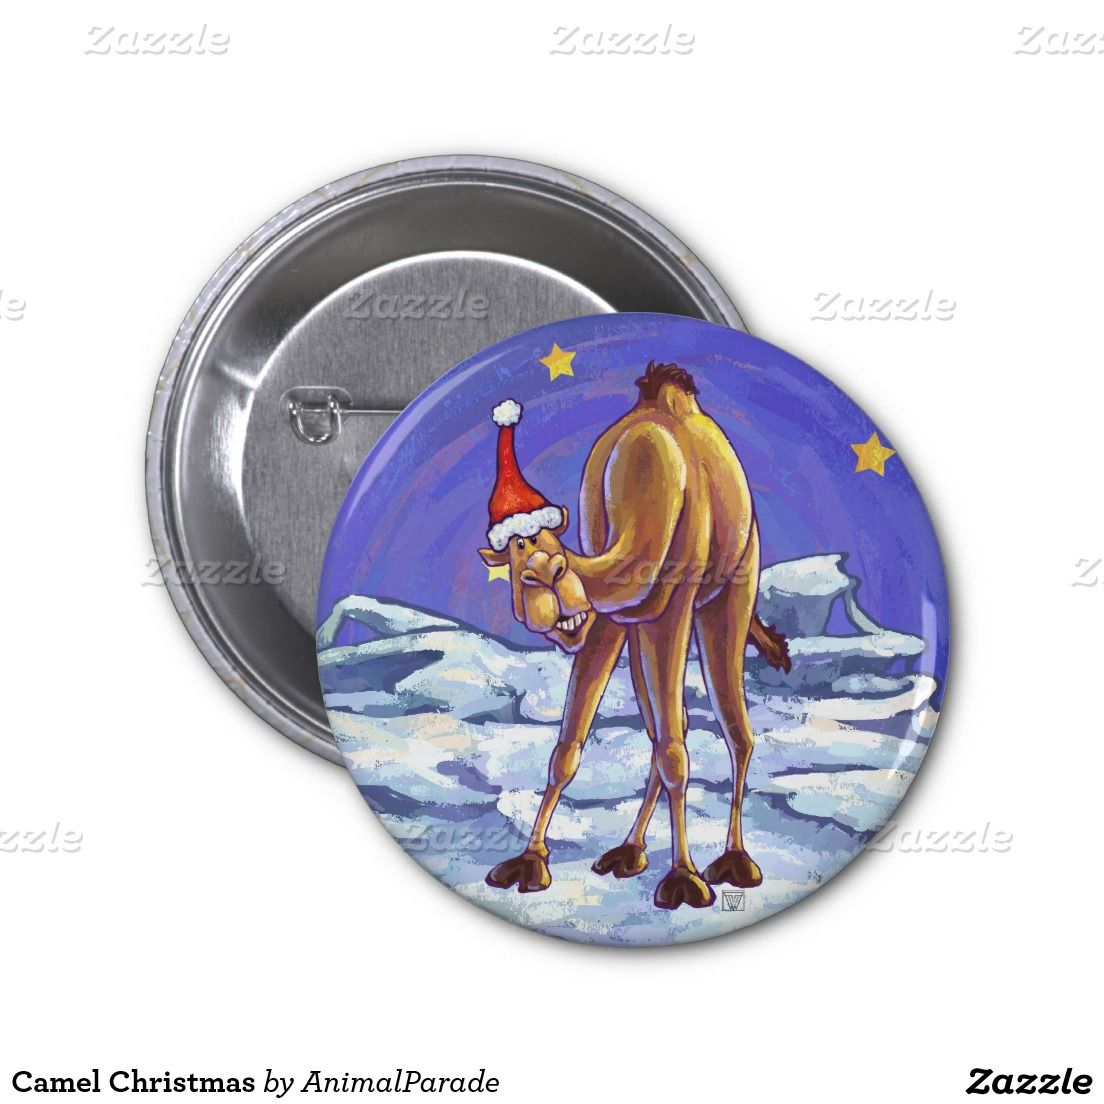 Camel Christmas 2 Inch Round Button Festive Button by Animal Parade.